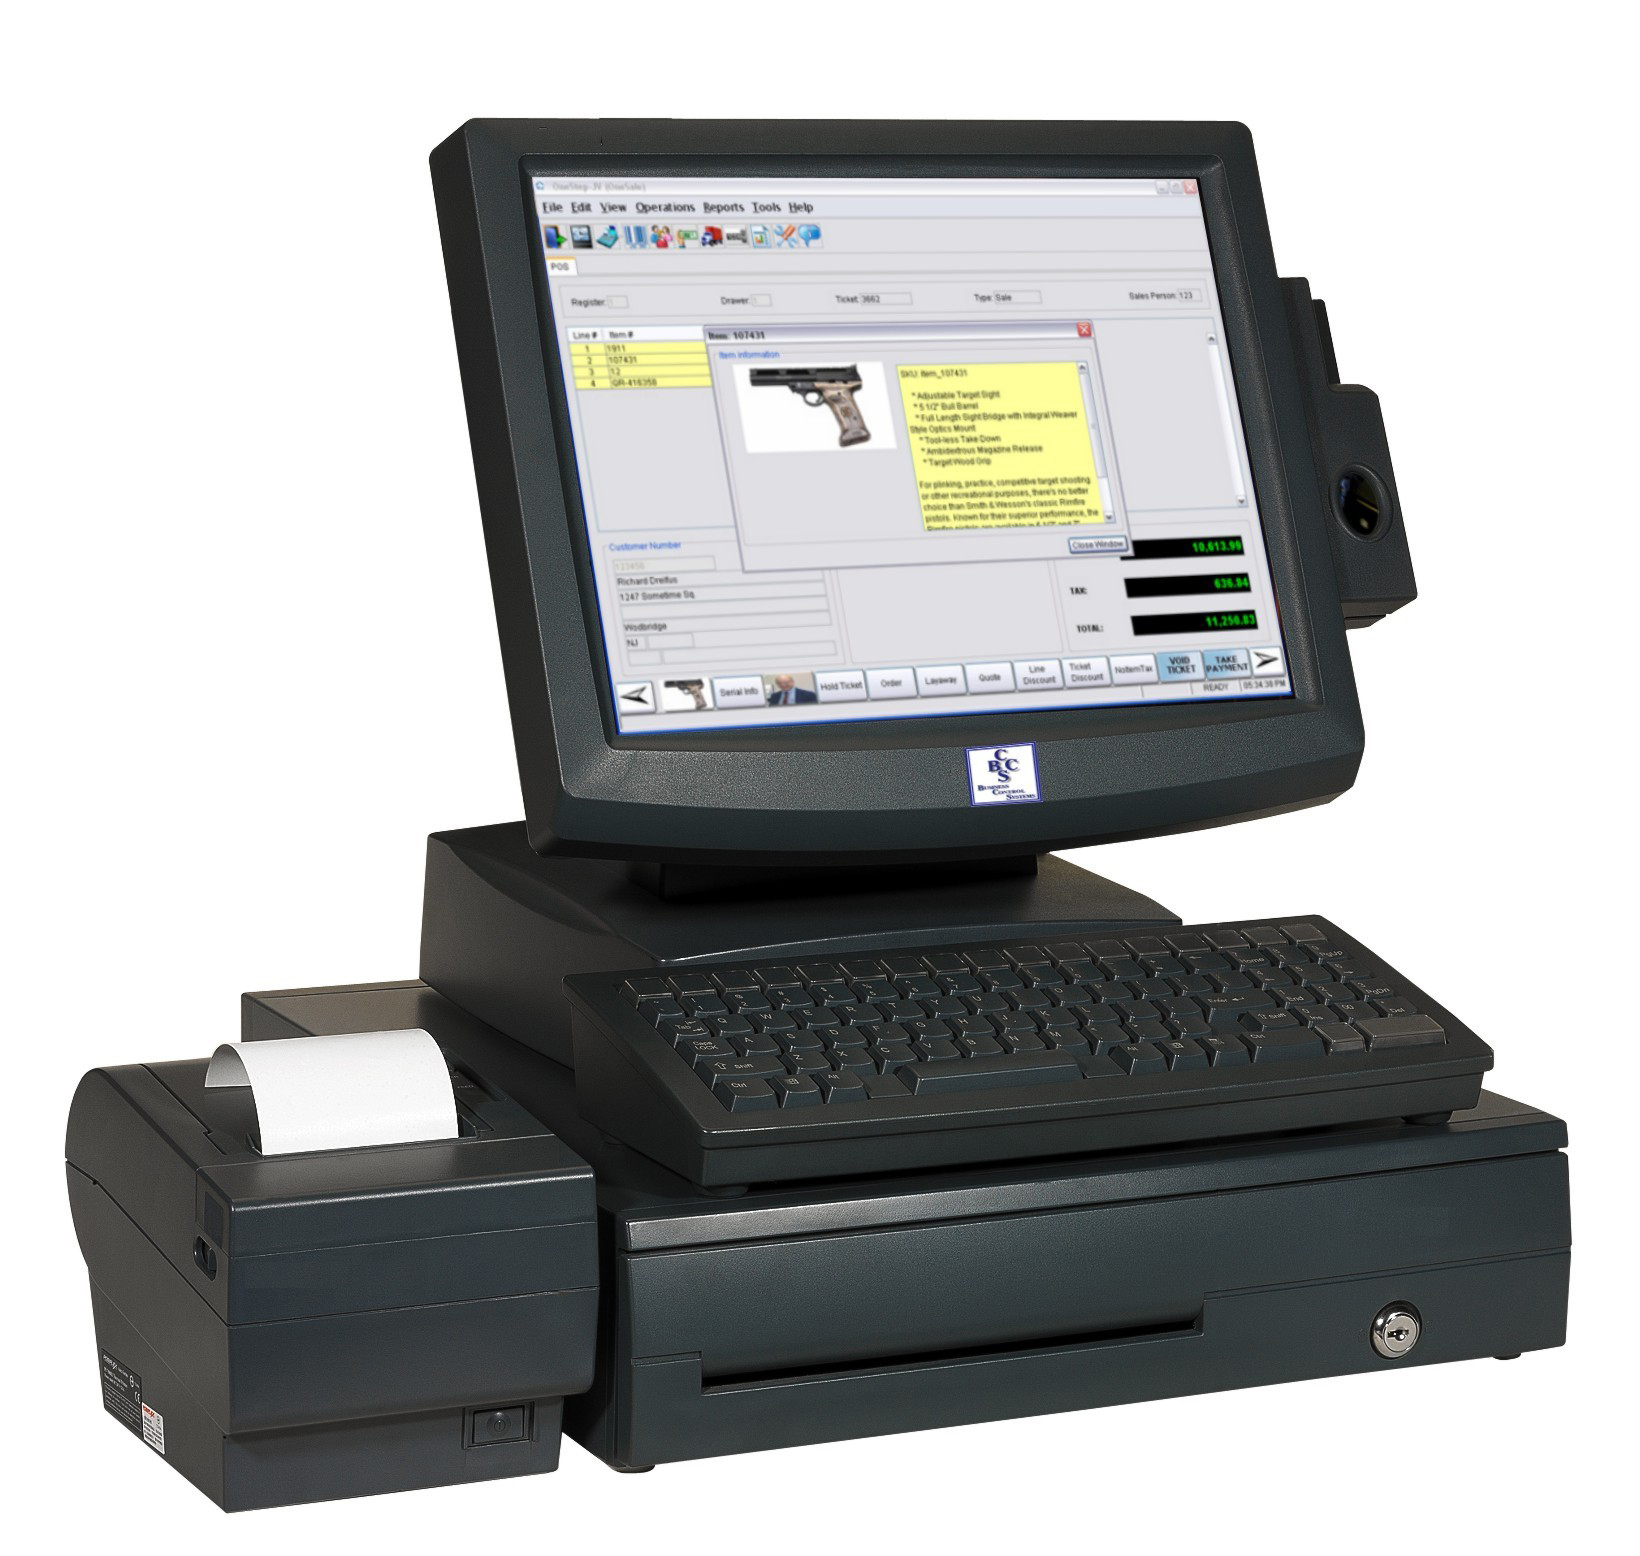 Complete easy to use point of sale systems, point of sale terminals and point of sale software are available from Business Control Systems.